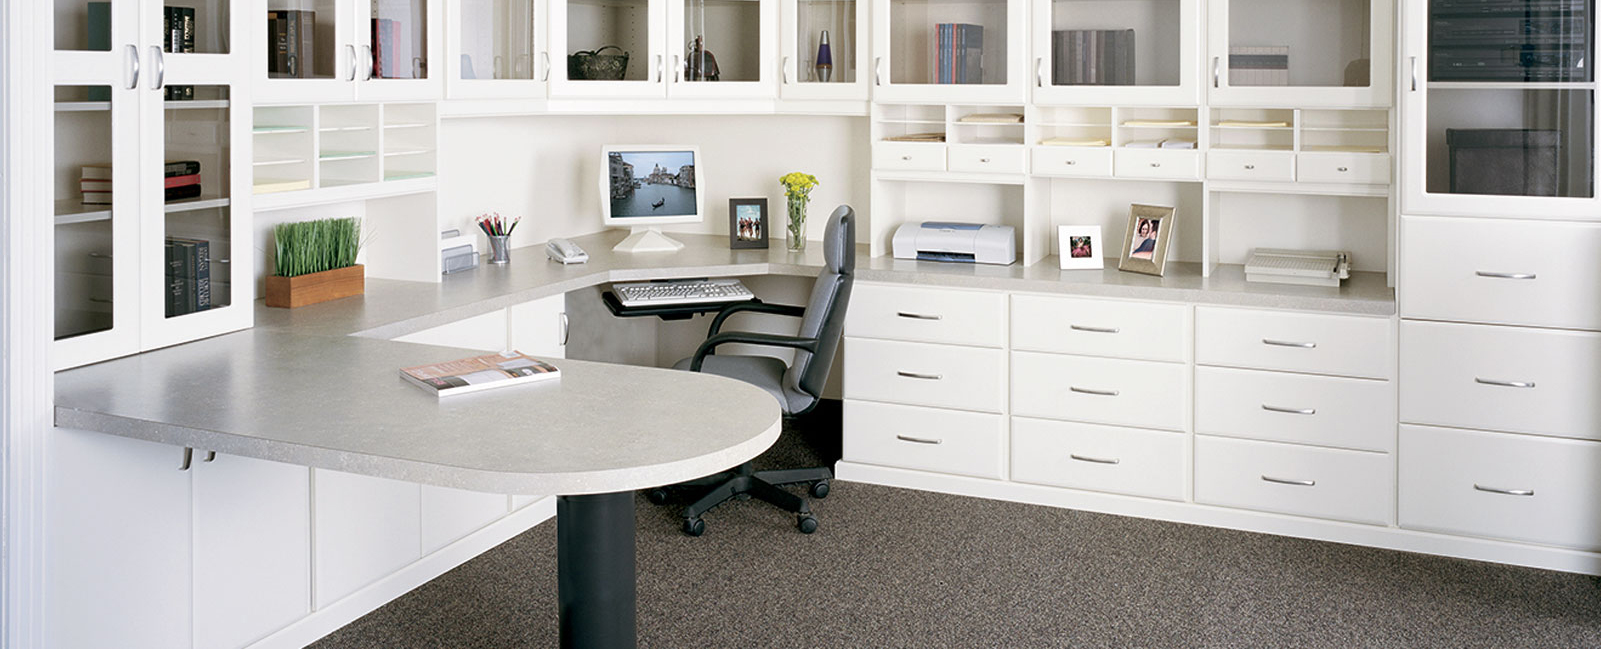 Home Office Cabinets and Organization Products